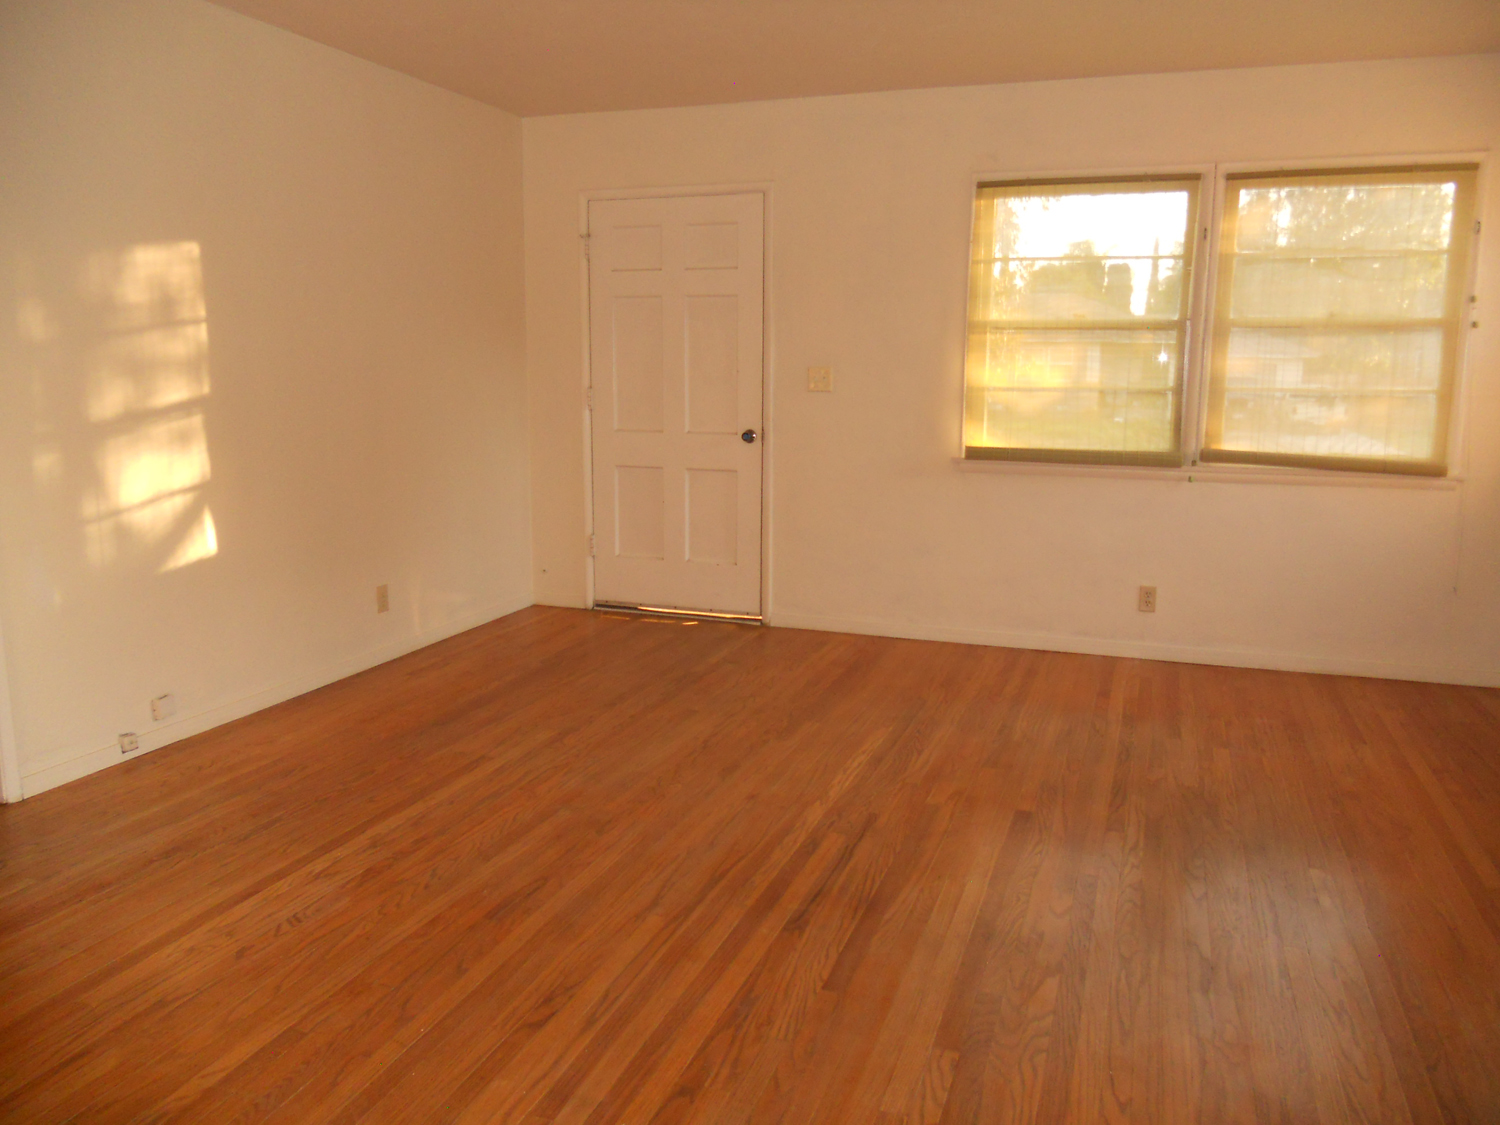 Living room with newly refinished hardwood floors.